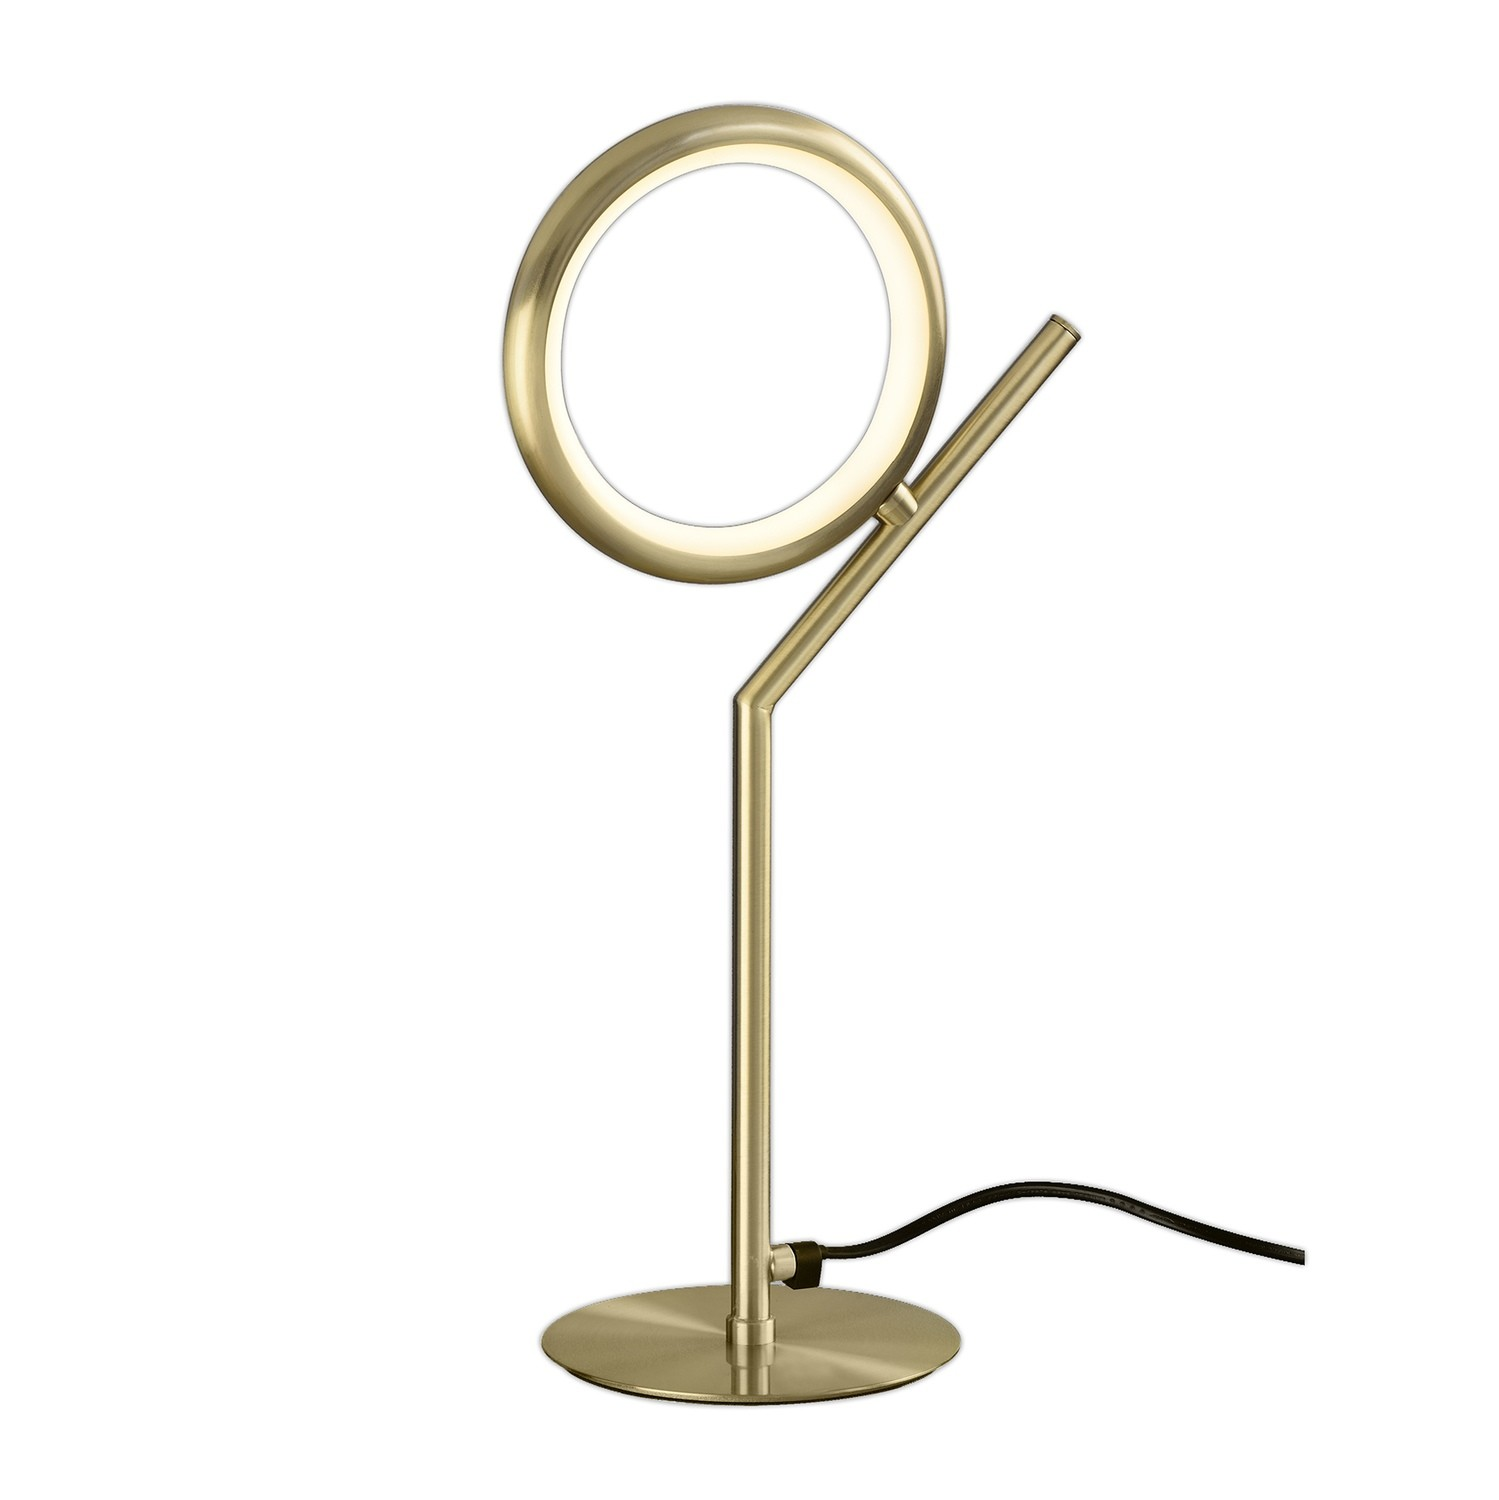 Olimpia Table Lamp, 8W LED, 3000K, 600lm, IP20, Satin Gold, 3yrs Warranty